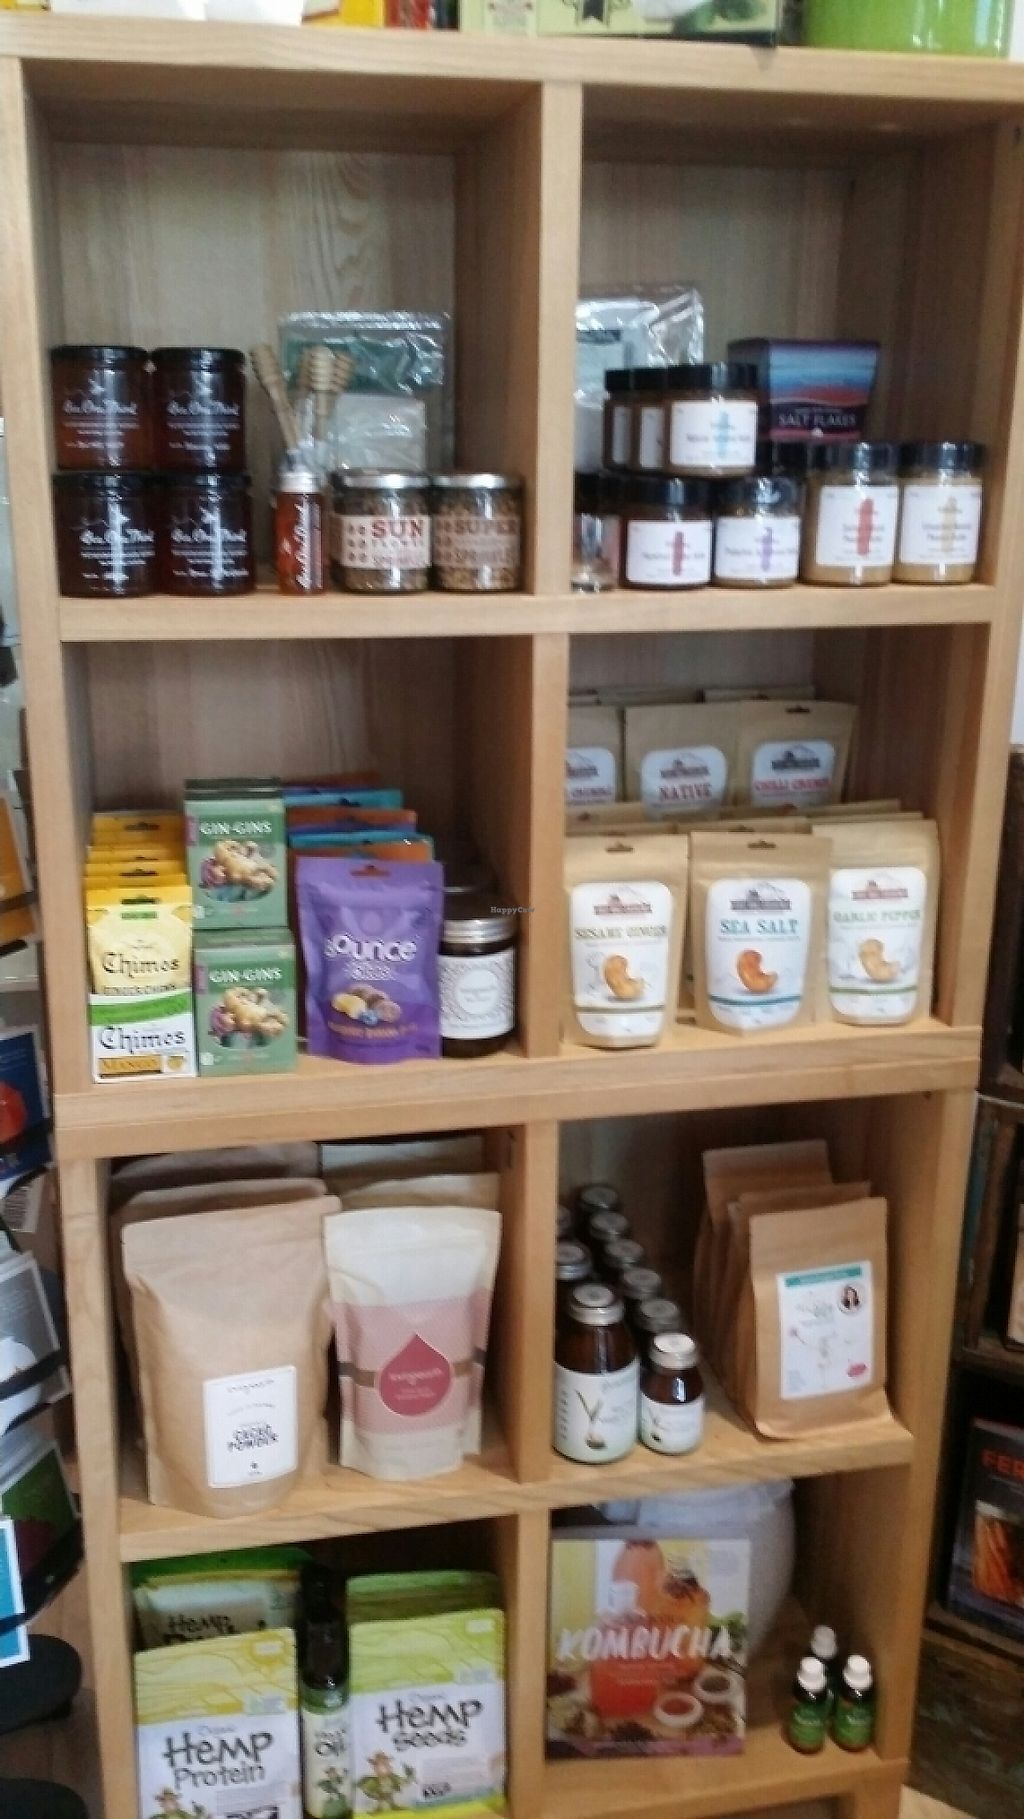 """Photo of Biome Eco Store  by <a href=""""/members/profile/Mike%20Munsie"""">Mike Munsie</a> <br/>inside 5 <br/> May 2, 2017  - <a href='/contact/abuse/image/74533/254881'>Report</a>"""